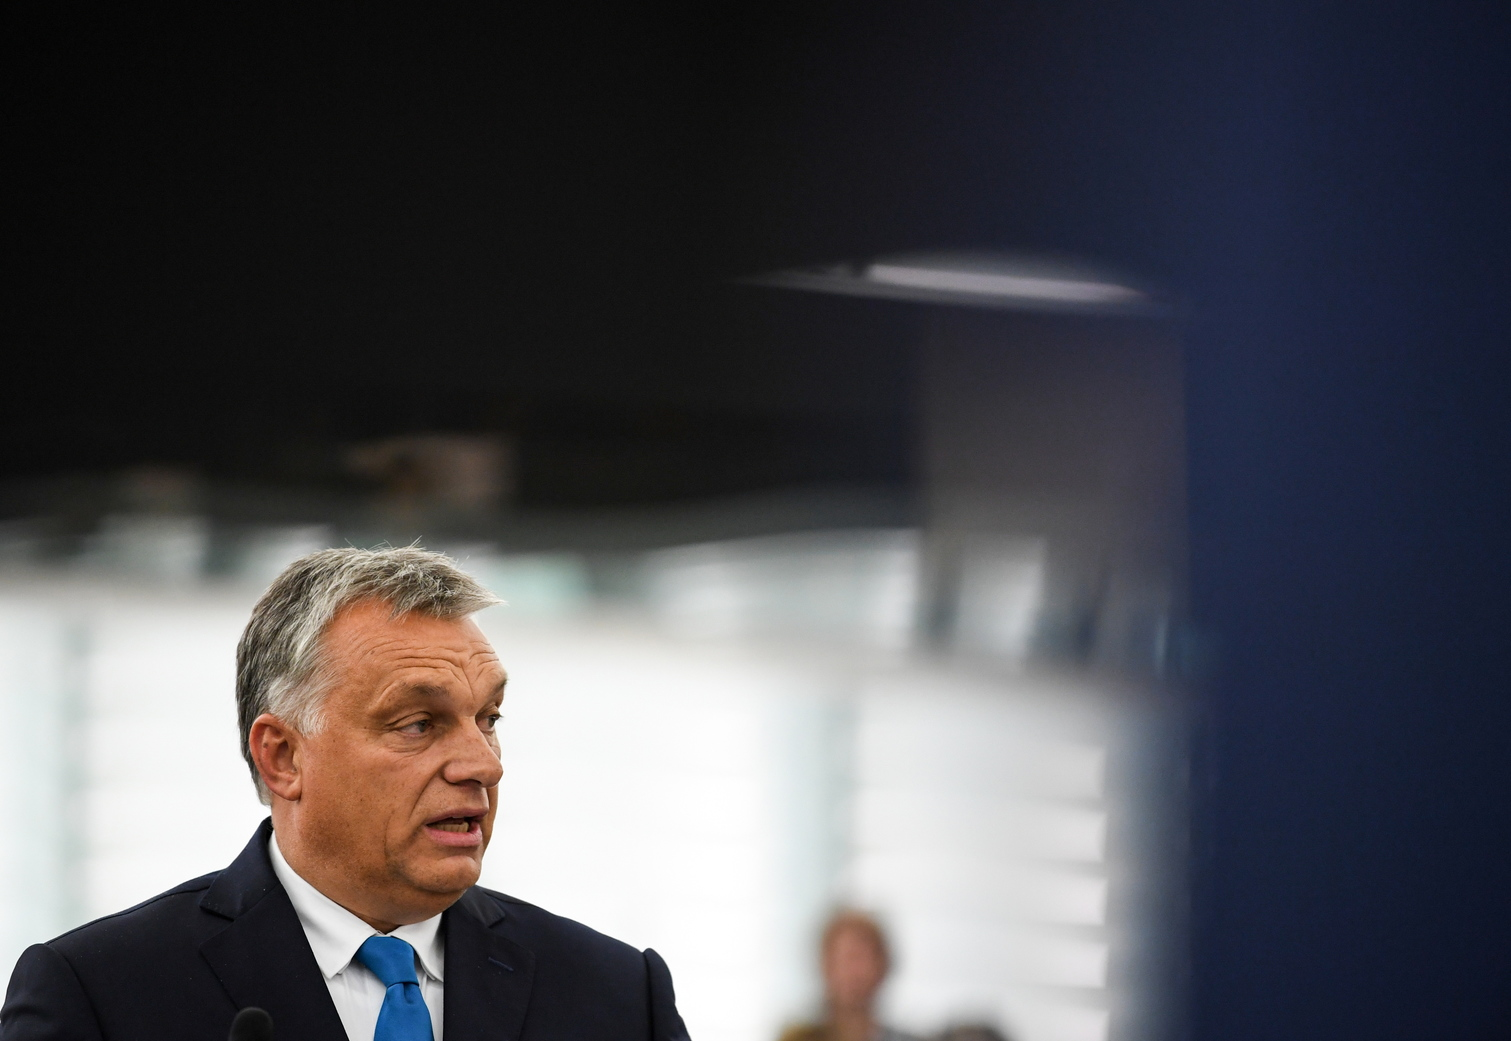 epa07012854 Hungarian Prime Minister Viktor Orban delivers his speech at the plenary session at the European Parliament in Strasbourg, France, 11 September 2018. In the afternoon, the European Parliament is debating a report by Greens MP Judith Sargentini. Among other things, the government in Budapest is accused to curtail the rights of minorities, dissenters and journalists, damage the independence of the judiciary and restrict religious freedom. EPA/PATRICK SEEGER